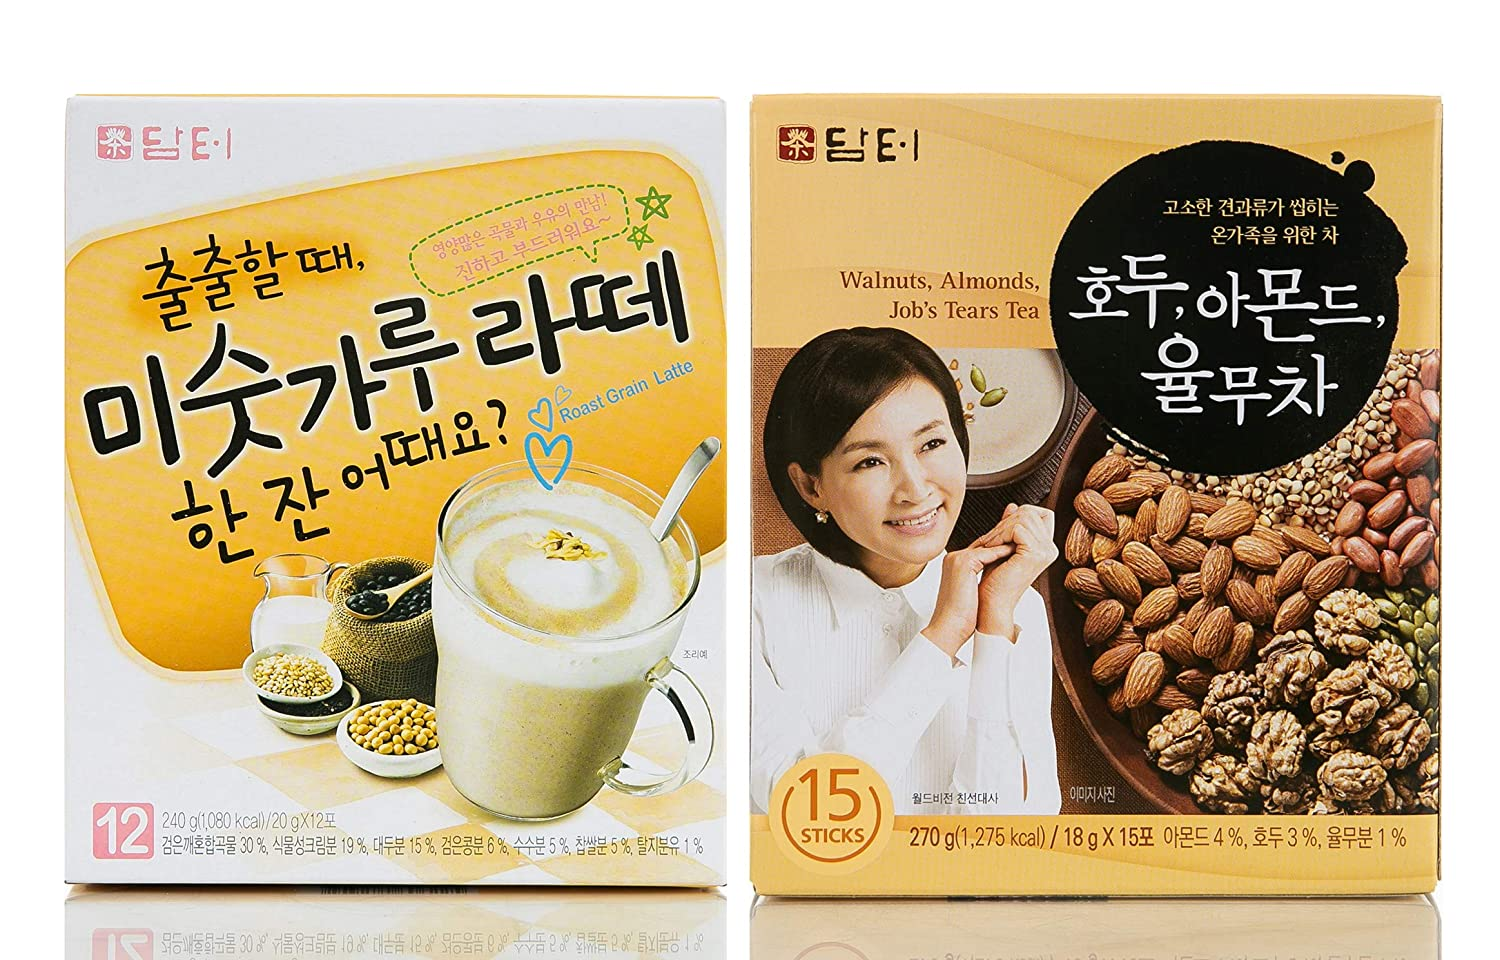 Damtuh Korean Roast Grain Latte 12 Sticks + Walnut, Almond, Adlay Tea 15 Sticks